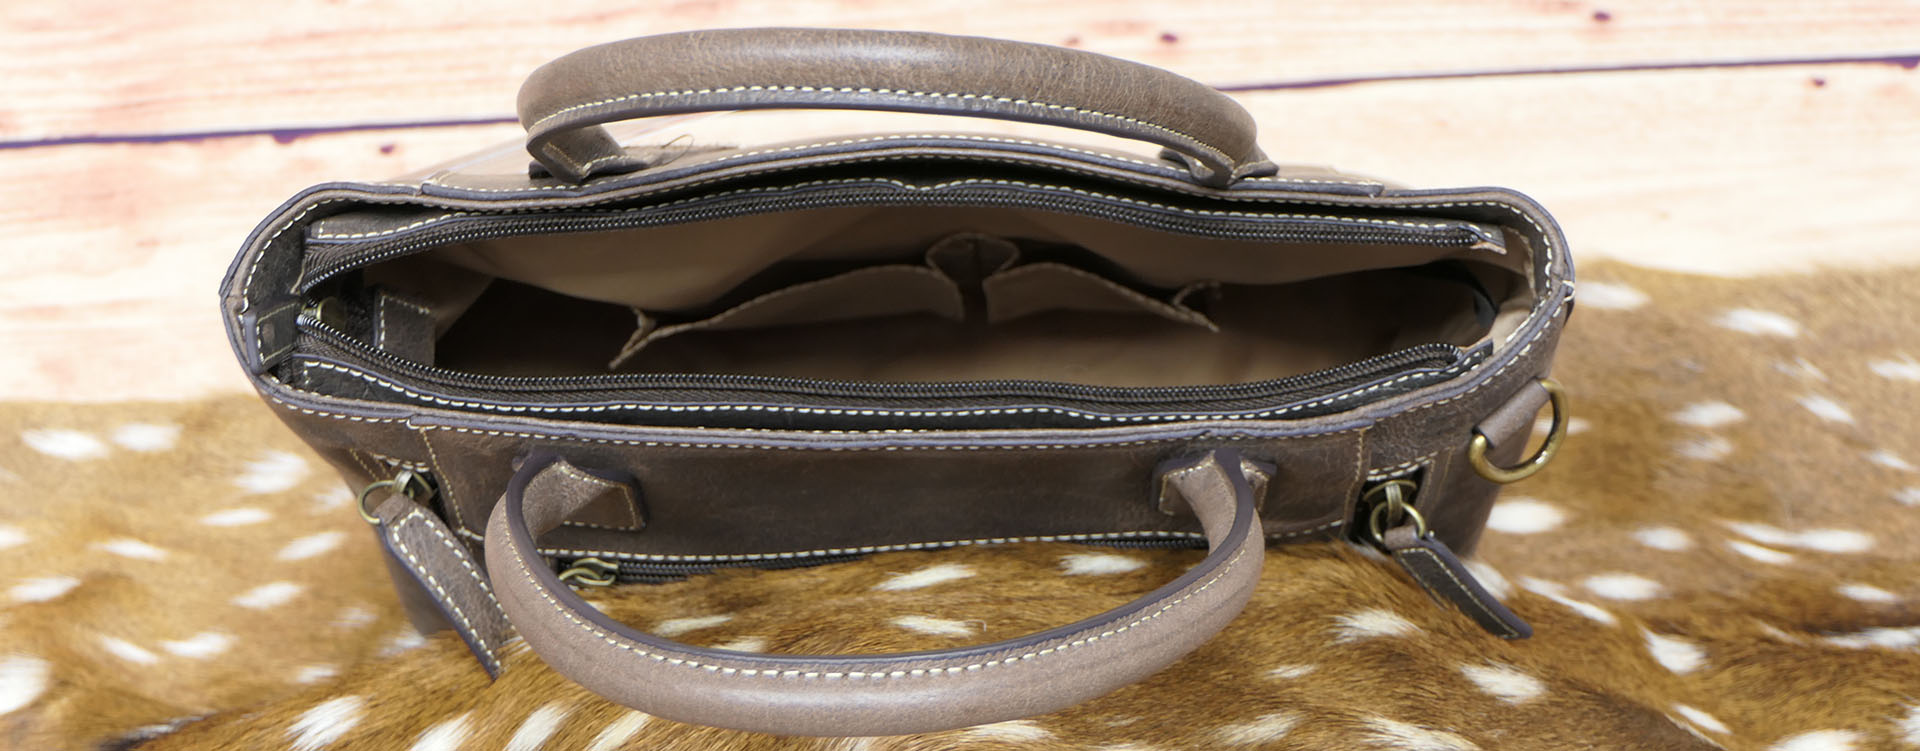 Leather Town Tote